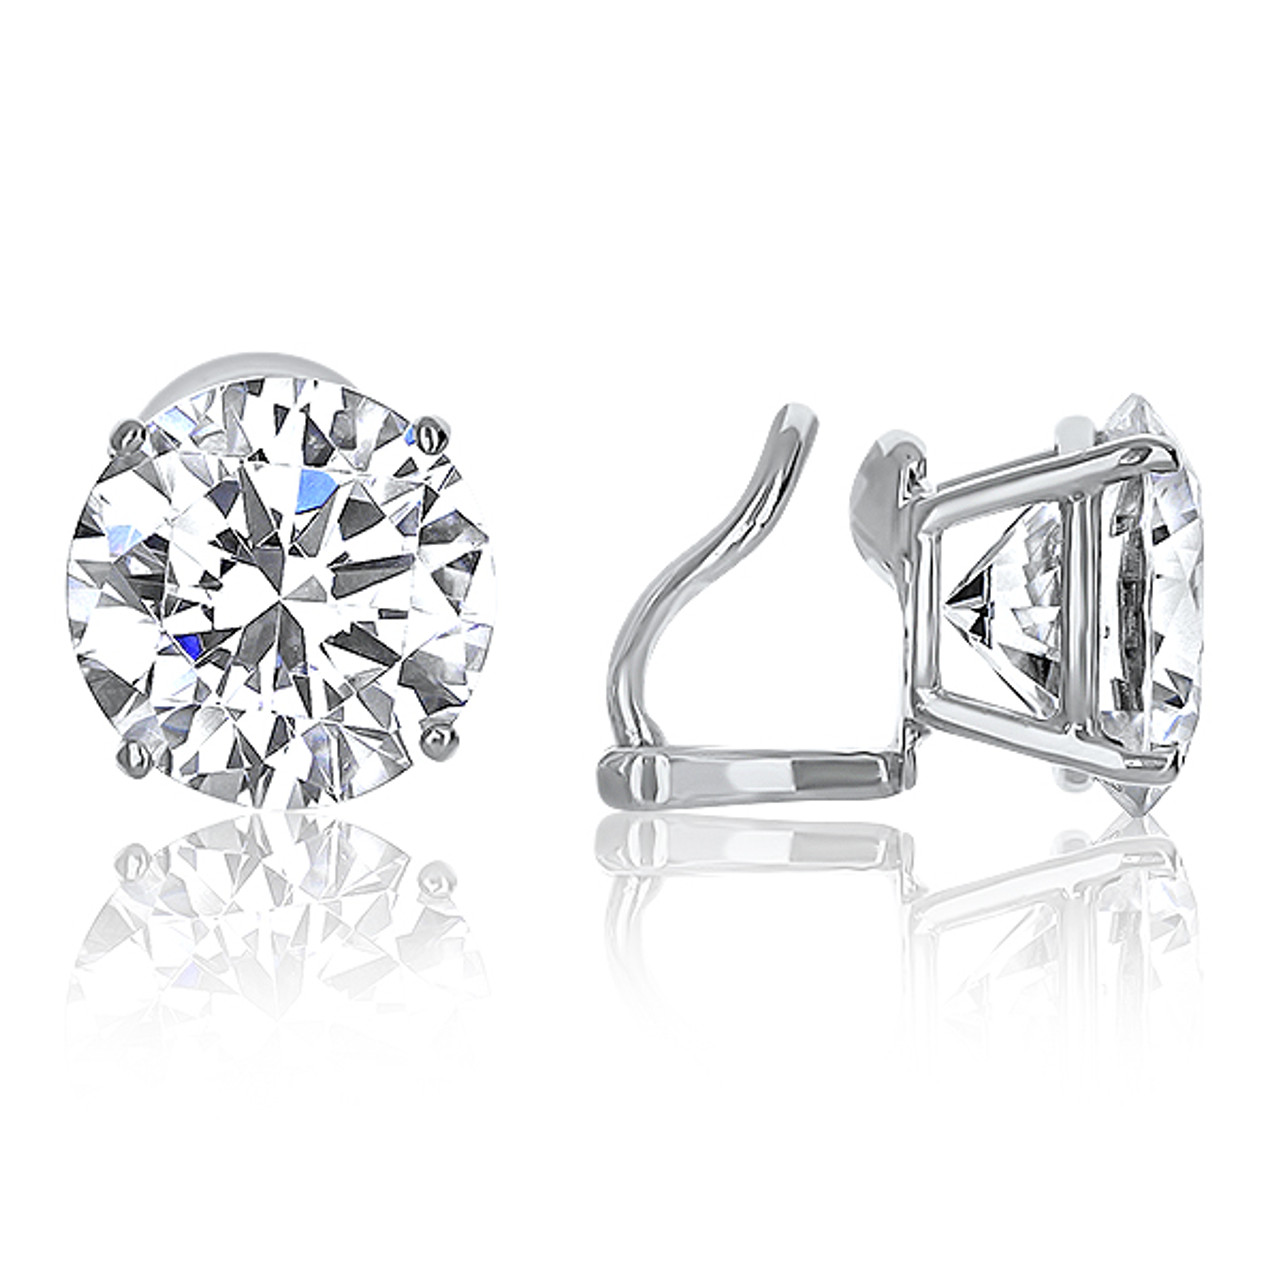 1e6169201 Basket Set Round CZ Stud Earrings with Non Pierced Omega Style Clip -  Mystique of Palm Beach